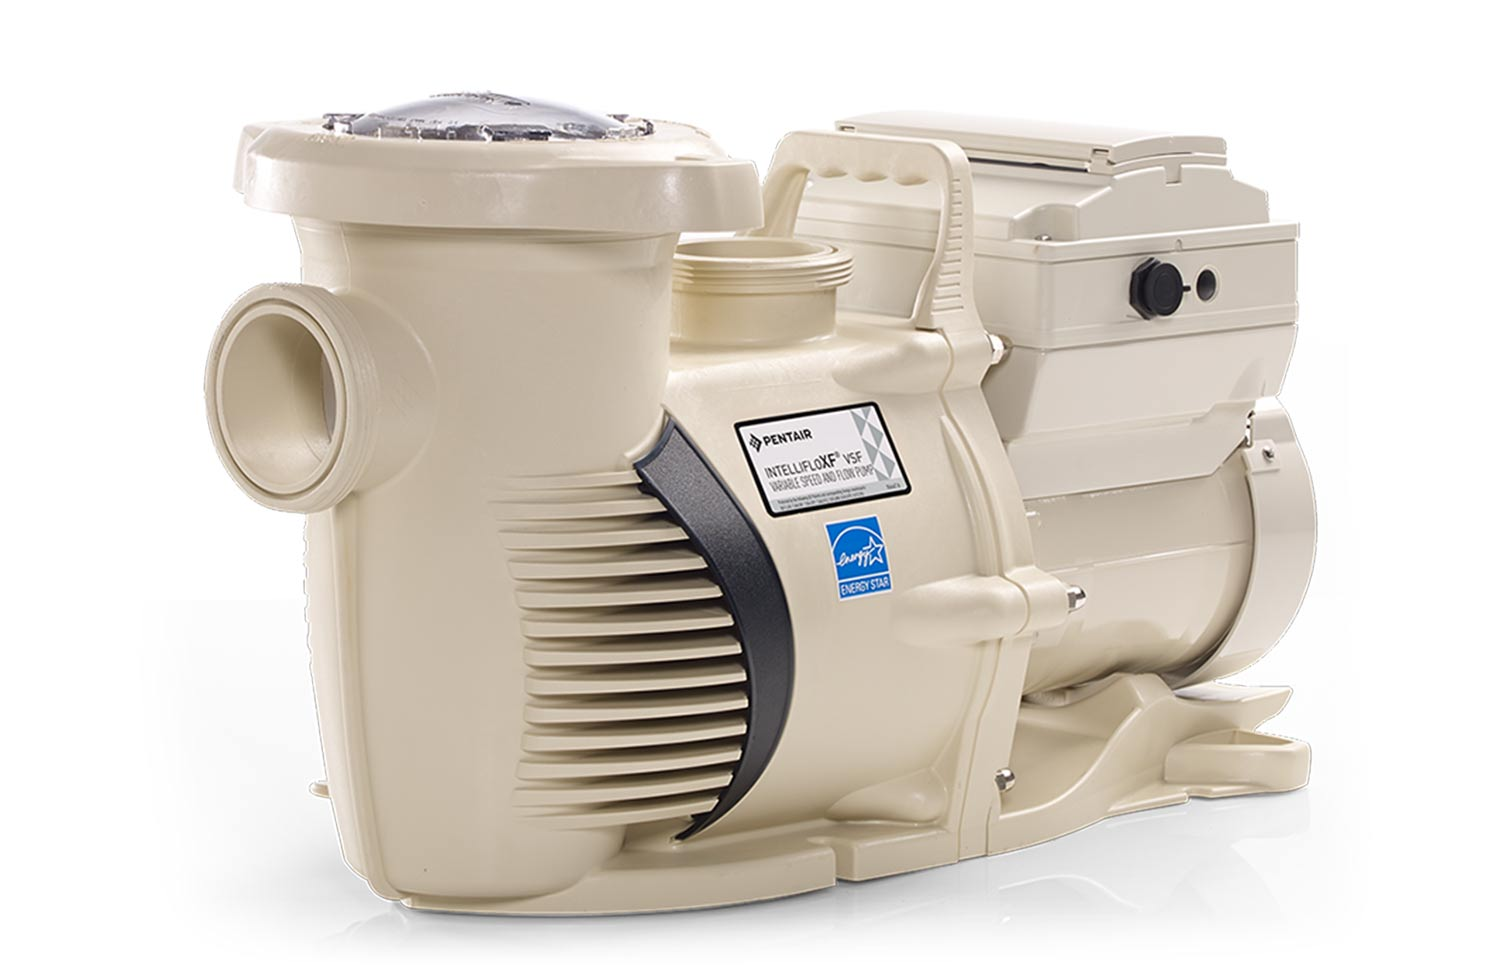 pentair pool pump IntelliFloXF VSF variable pump best seller with 8 programmable speeds and flow settings